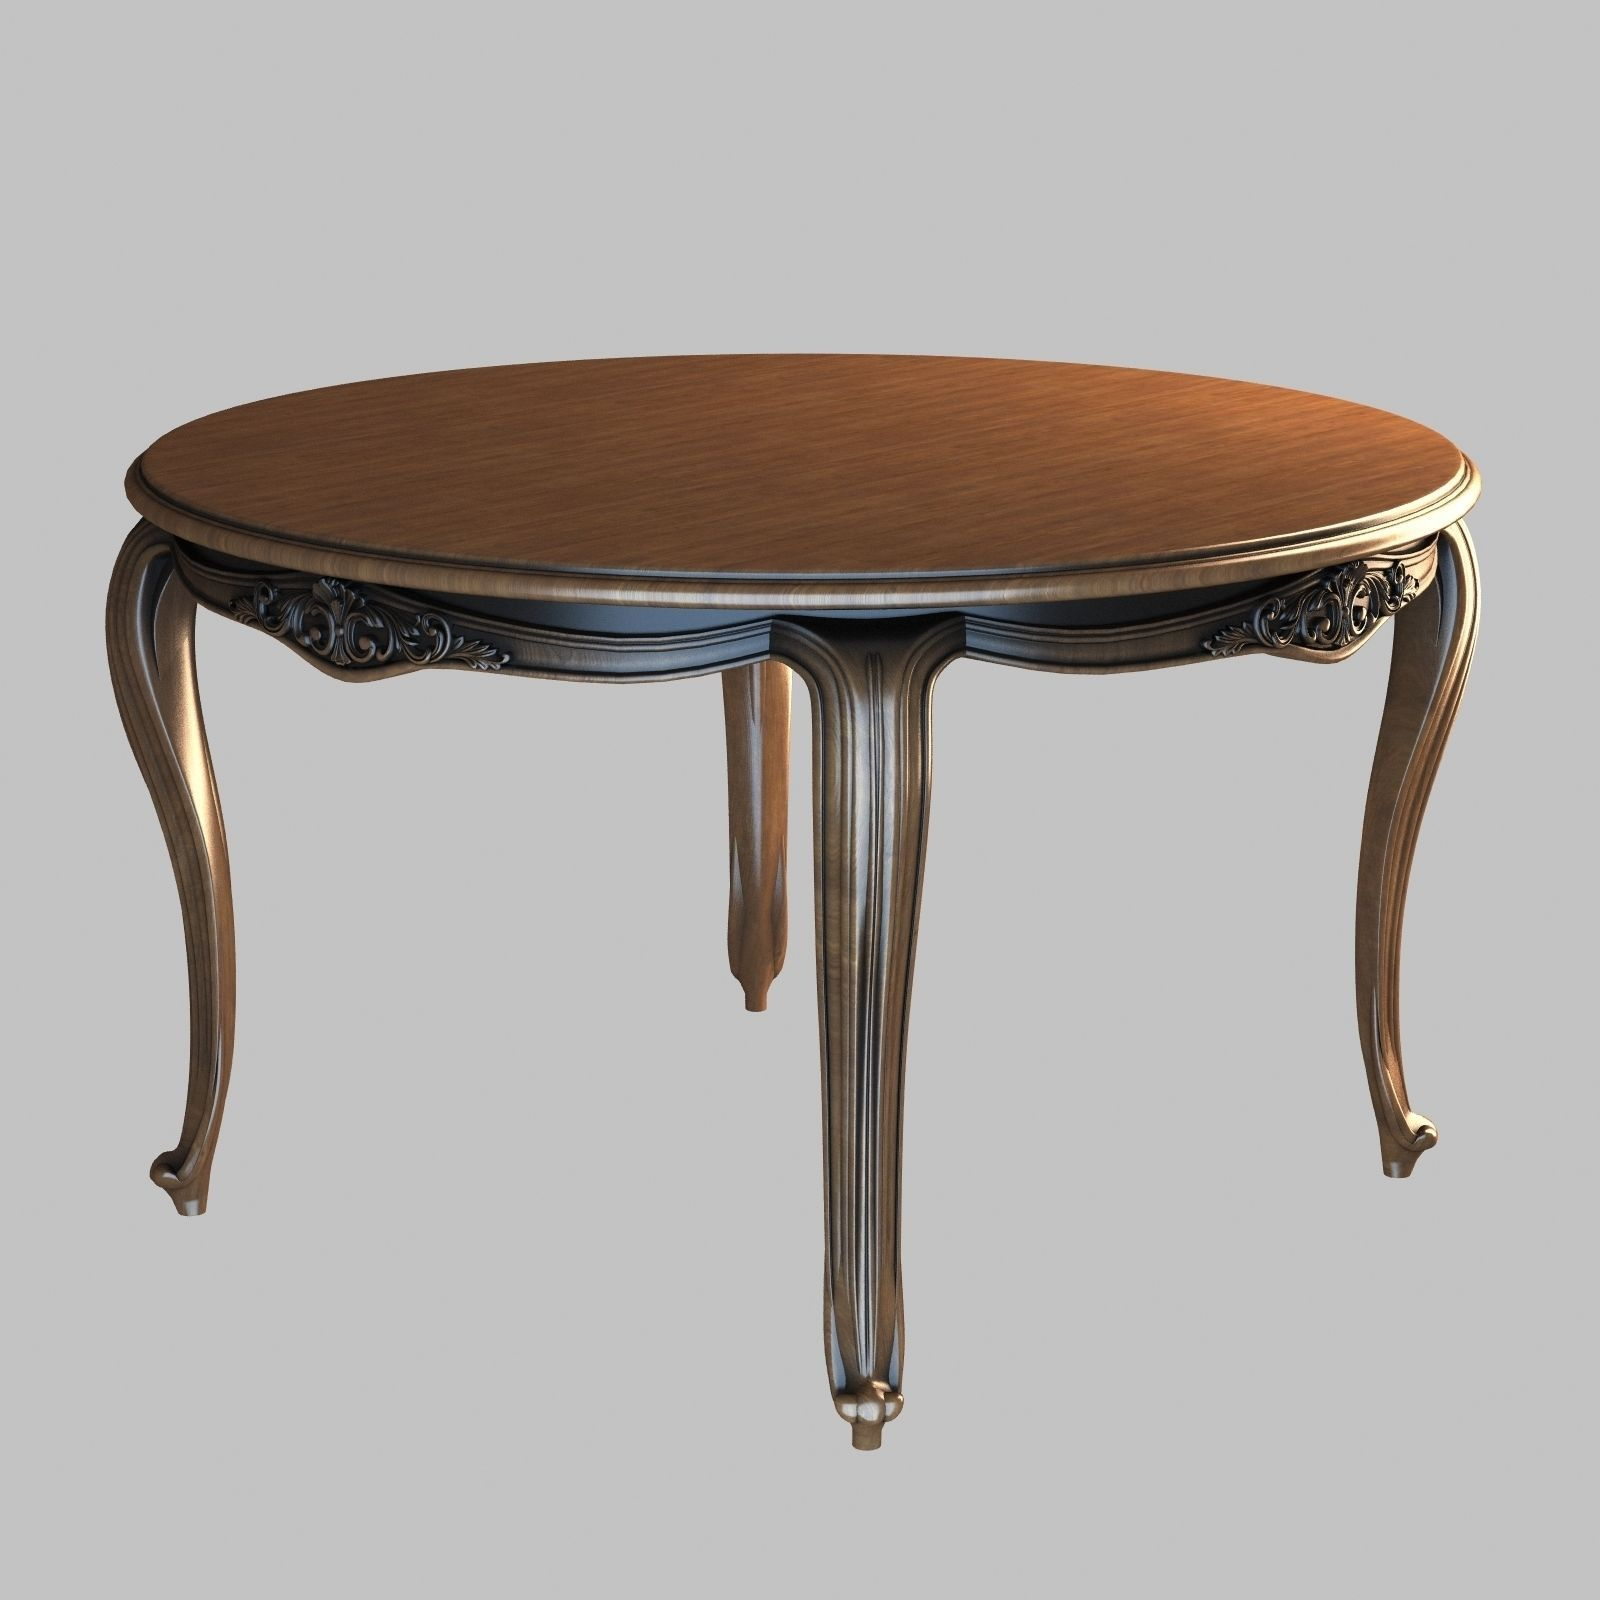 Dining round table 1 3d model max for Dining table latest model